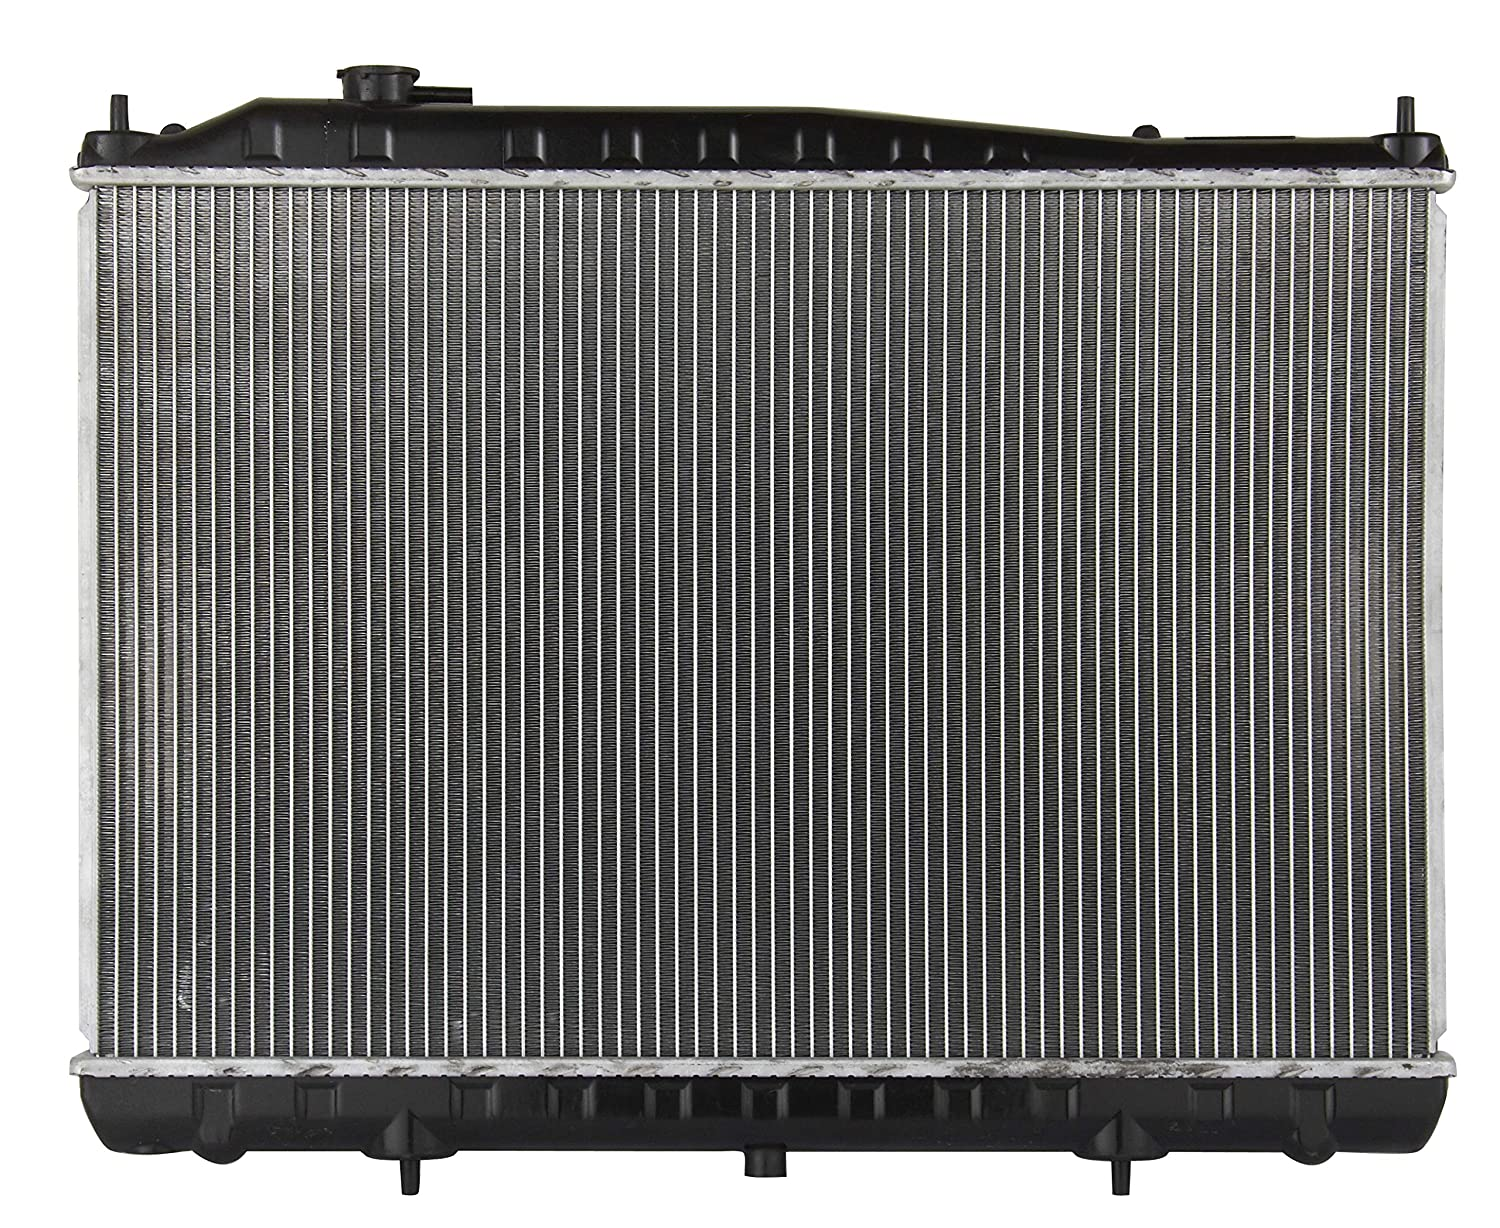 Amazon.com: Spectra Premium CU2215 Complete Radiator for Nissan Frontier:  Automotive